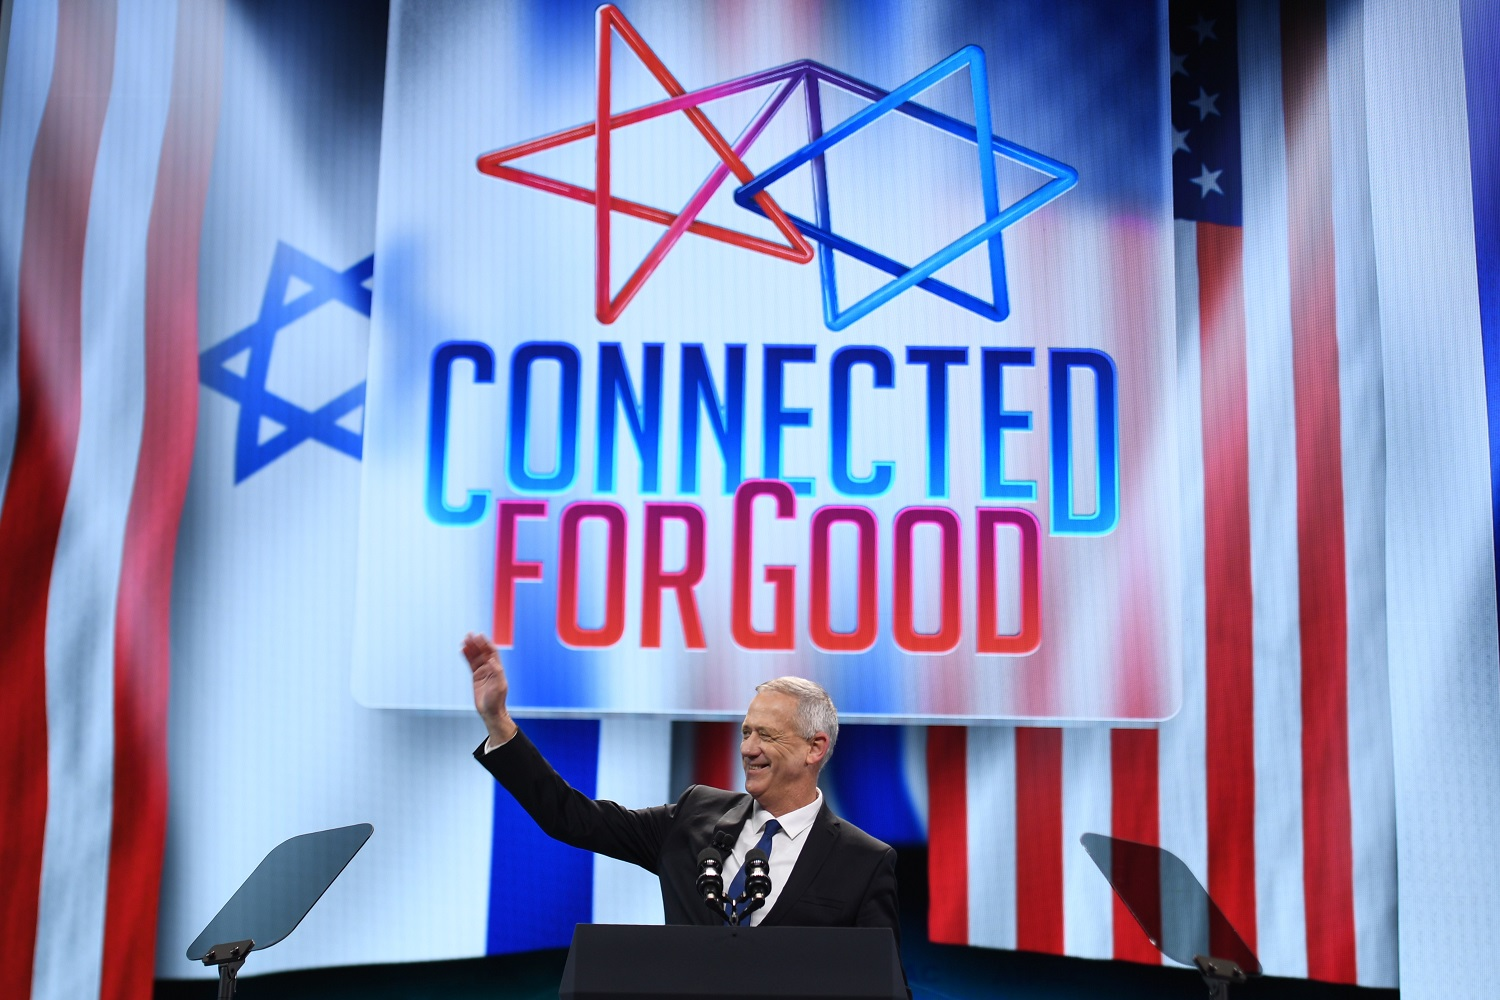 Benny Gantz at the AIPAC annual meeting in Washington in March 2019 (AFP)